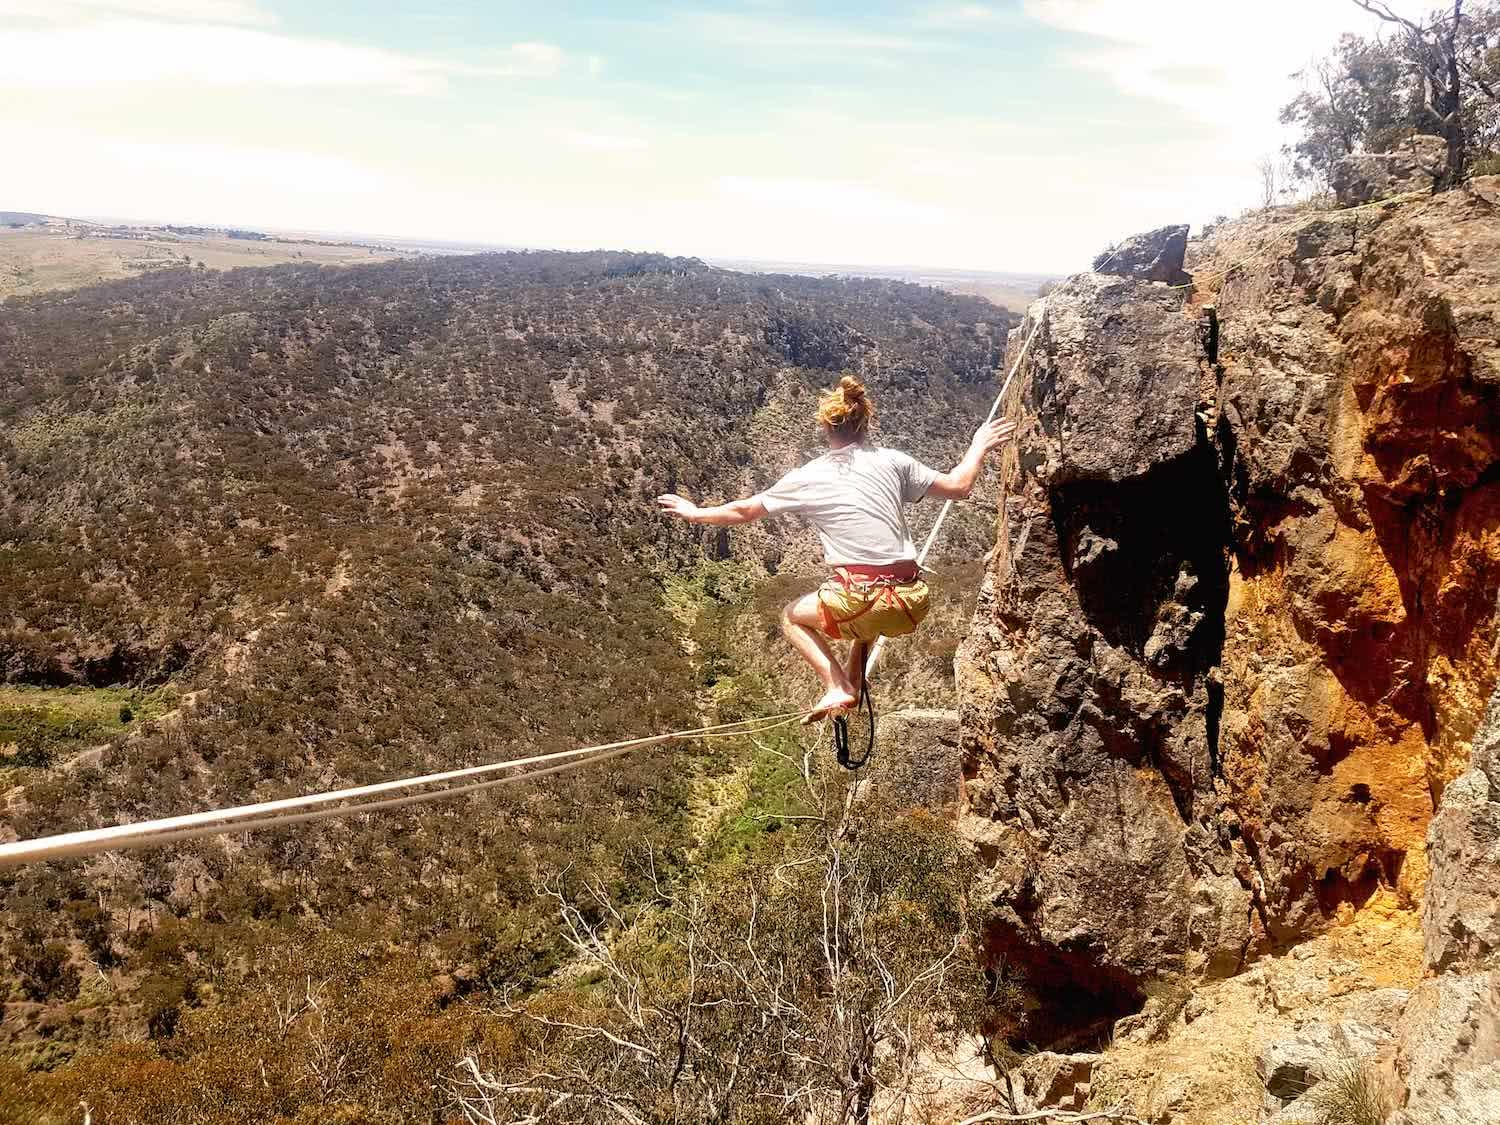 scott runacres, werribee gorge, highline, osprey adventure grant, highlining